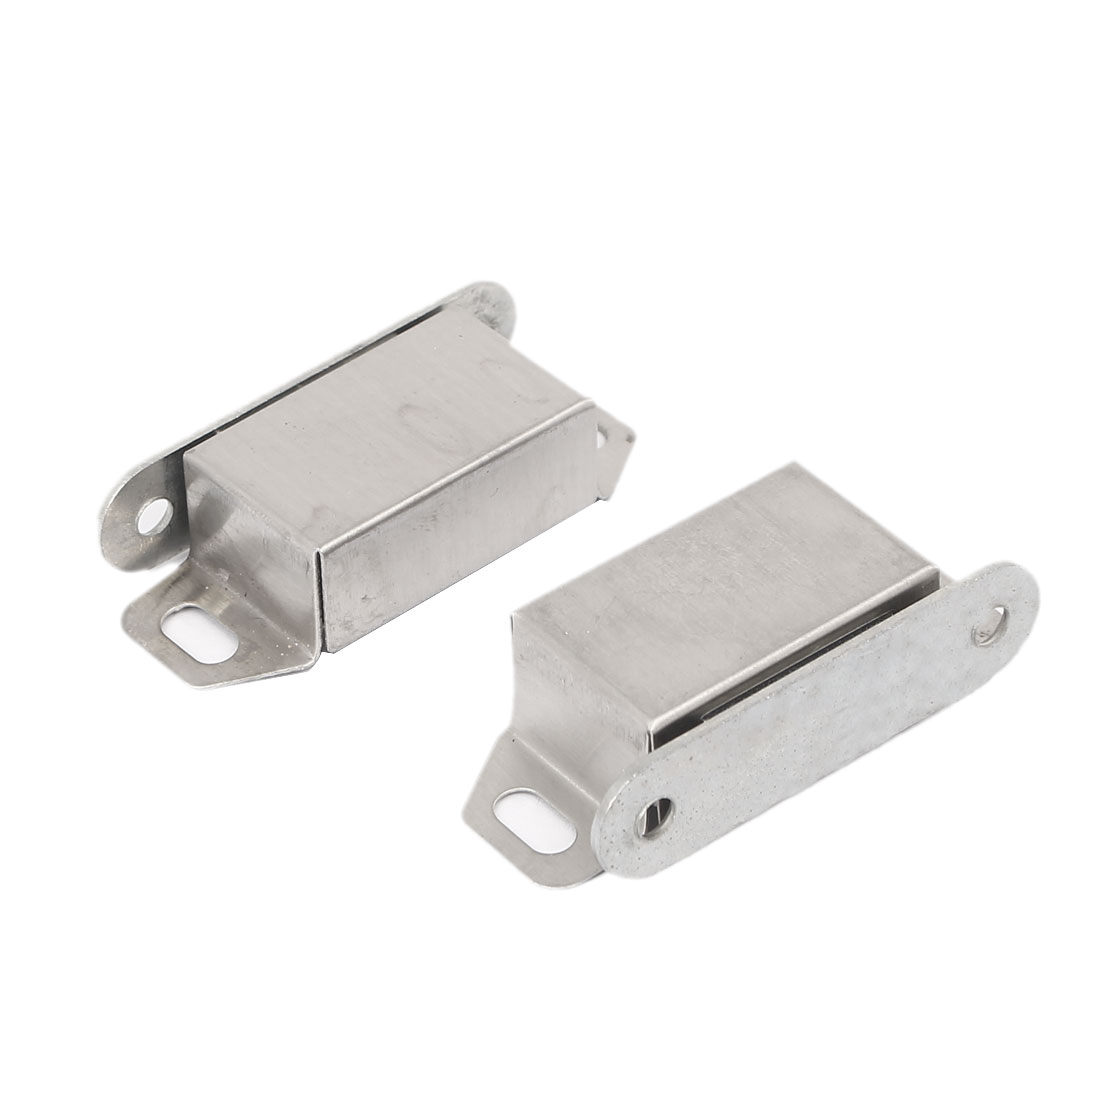 Bedroom Bathroom Door Magnetic Catch Latch Silver Tone 48mmx20mmx12mm 2pcs